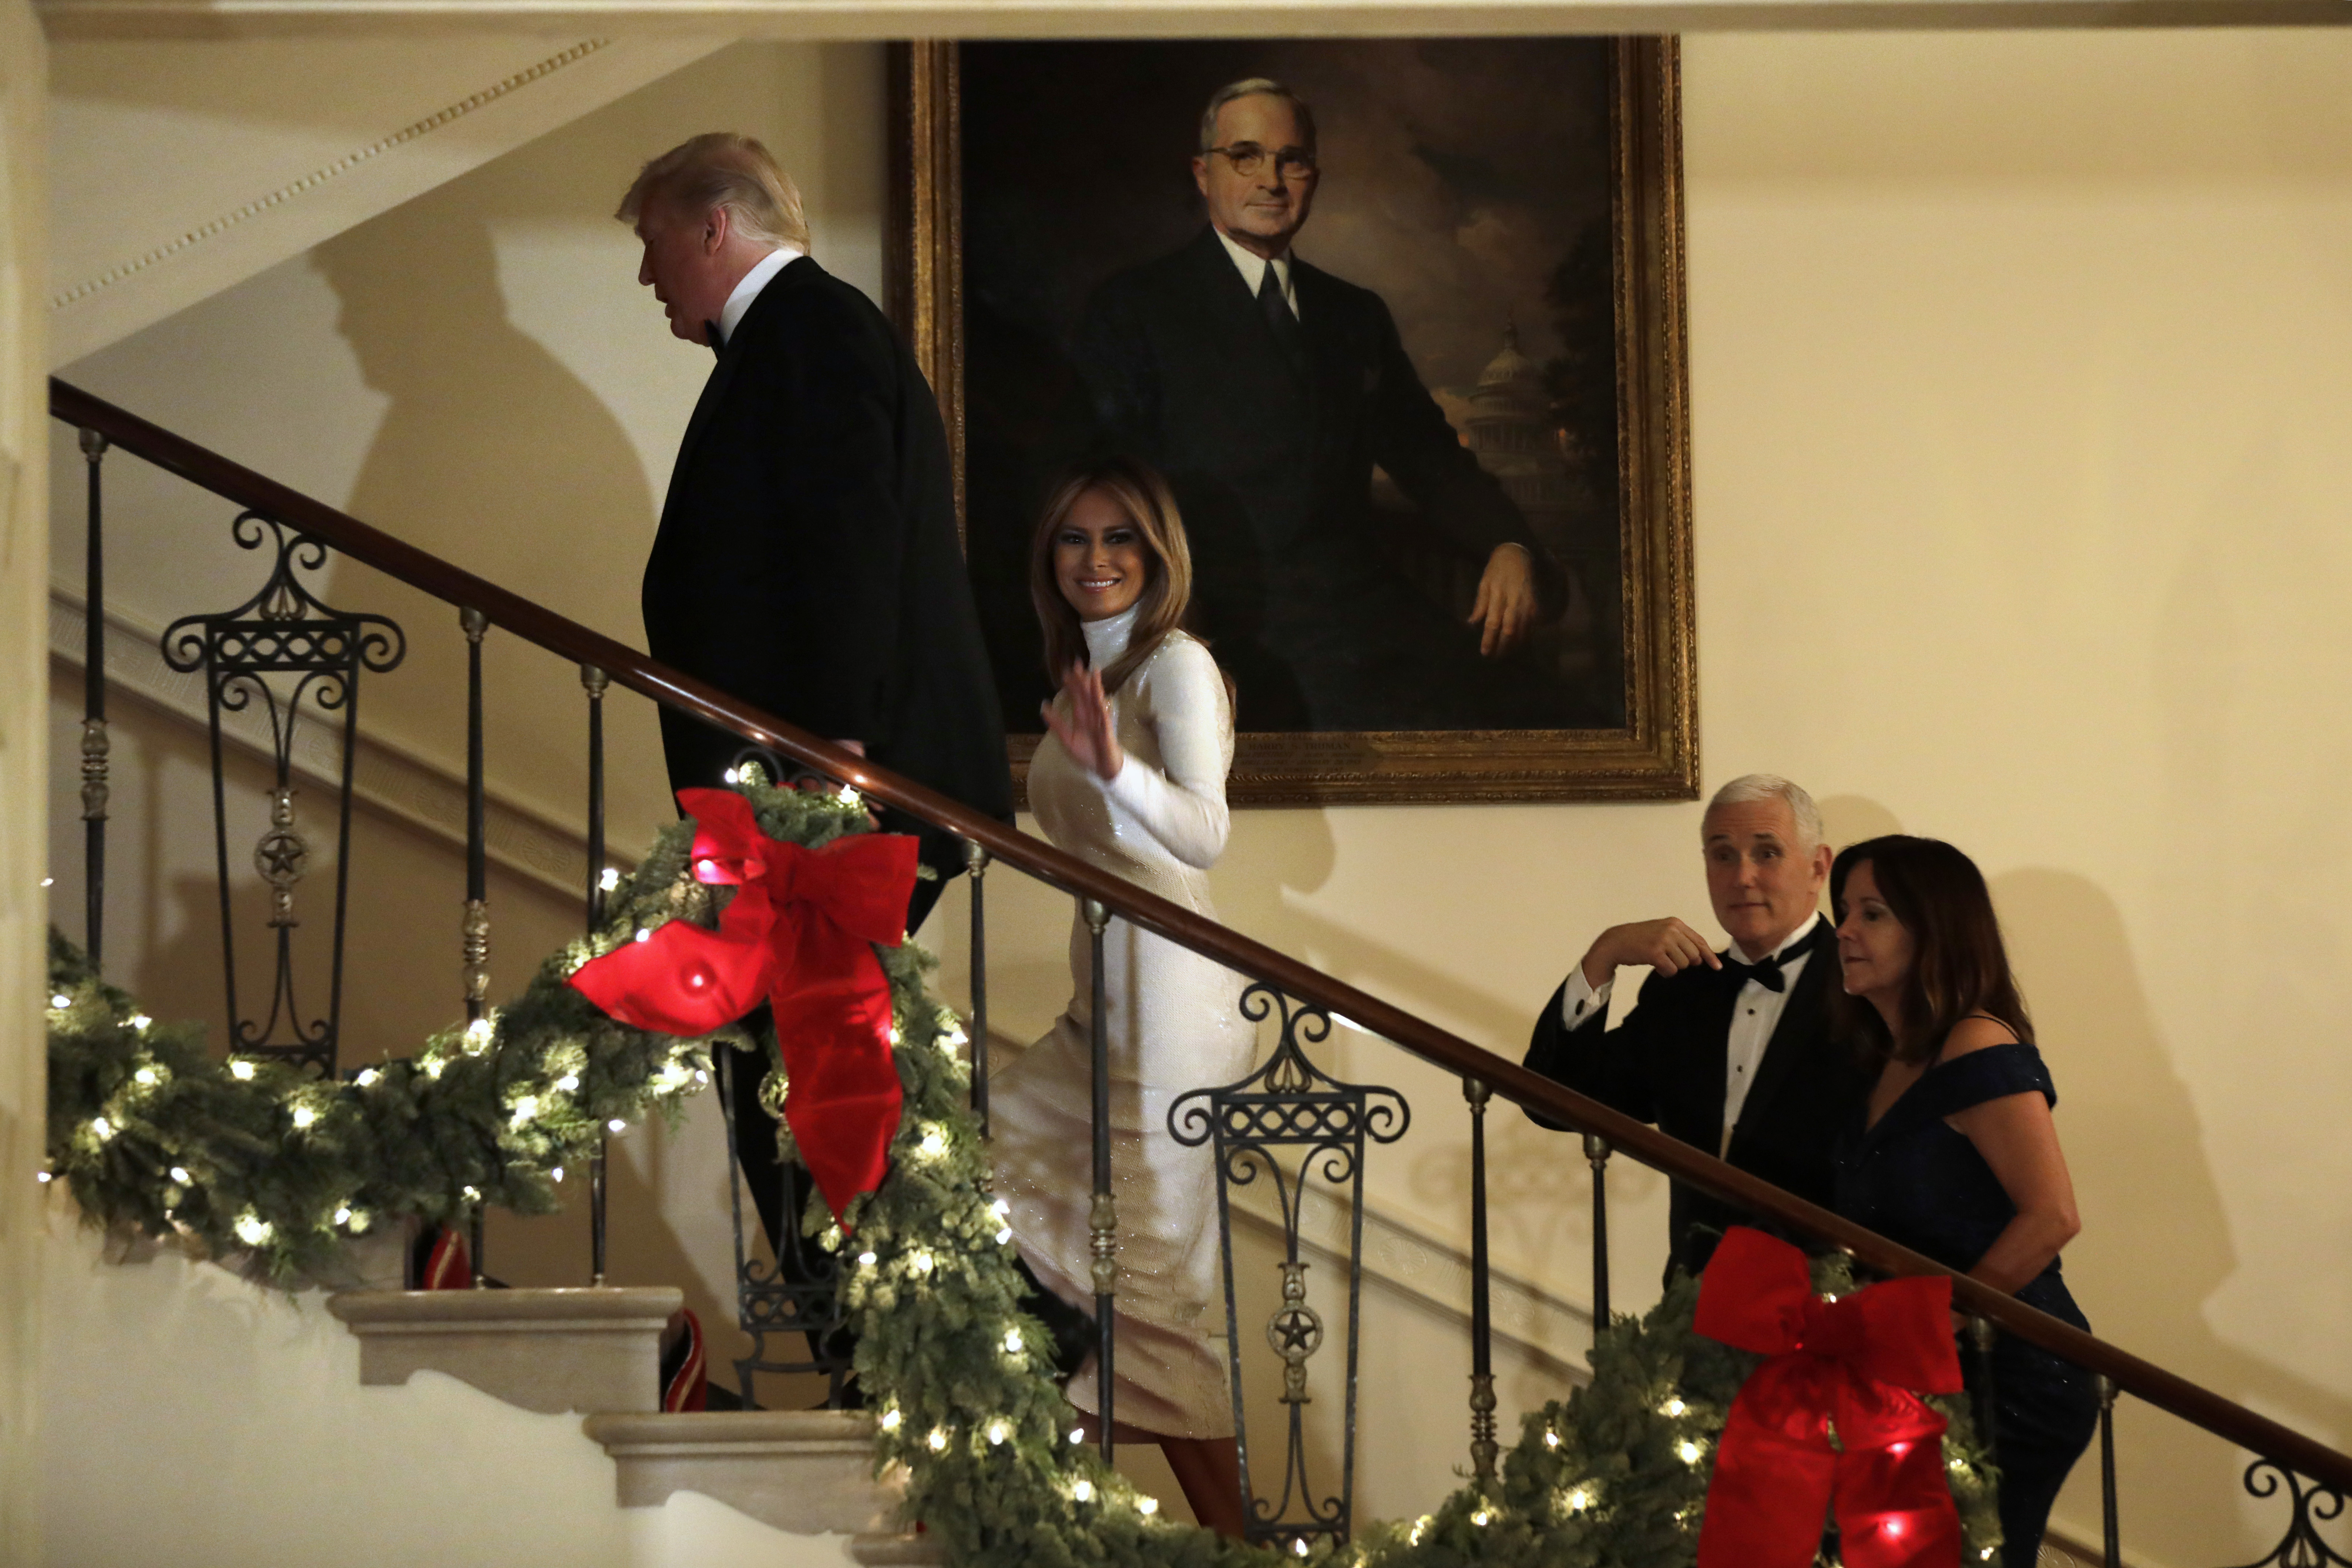 President Donald Trump and First Lady Melania Trump leave after the Congressional Ball on December 15, 2018.